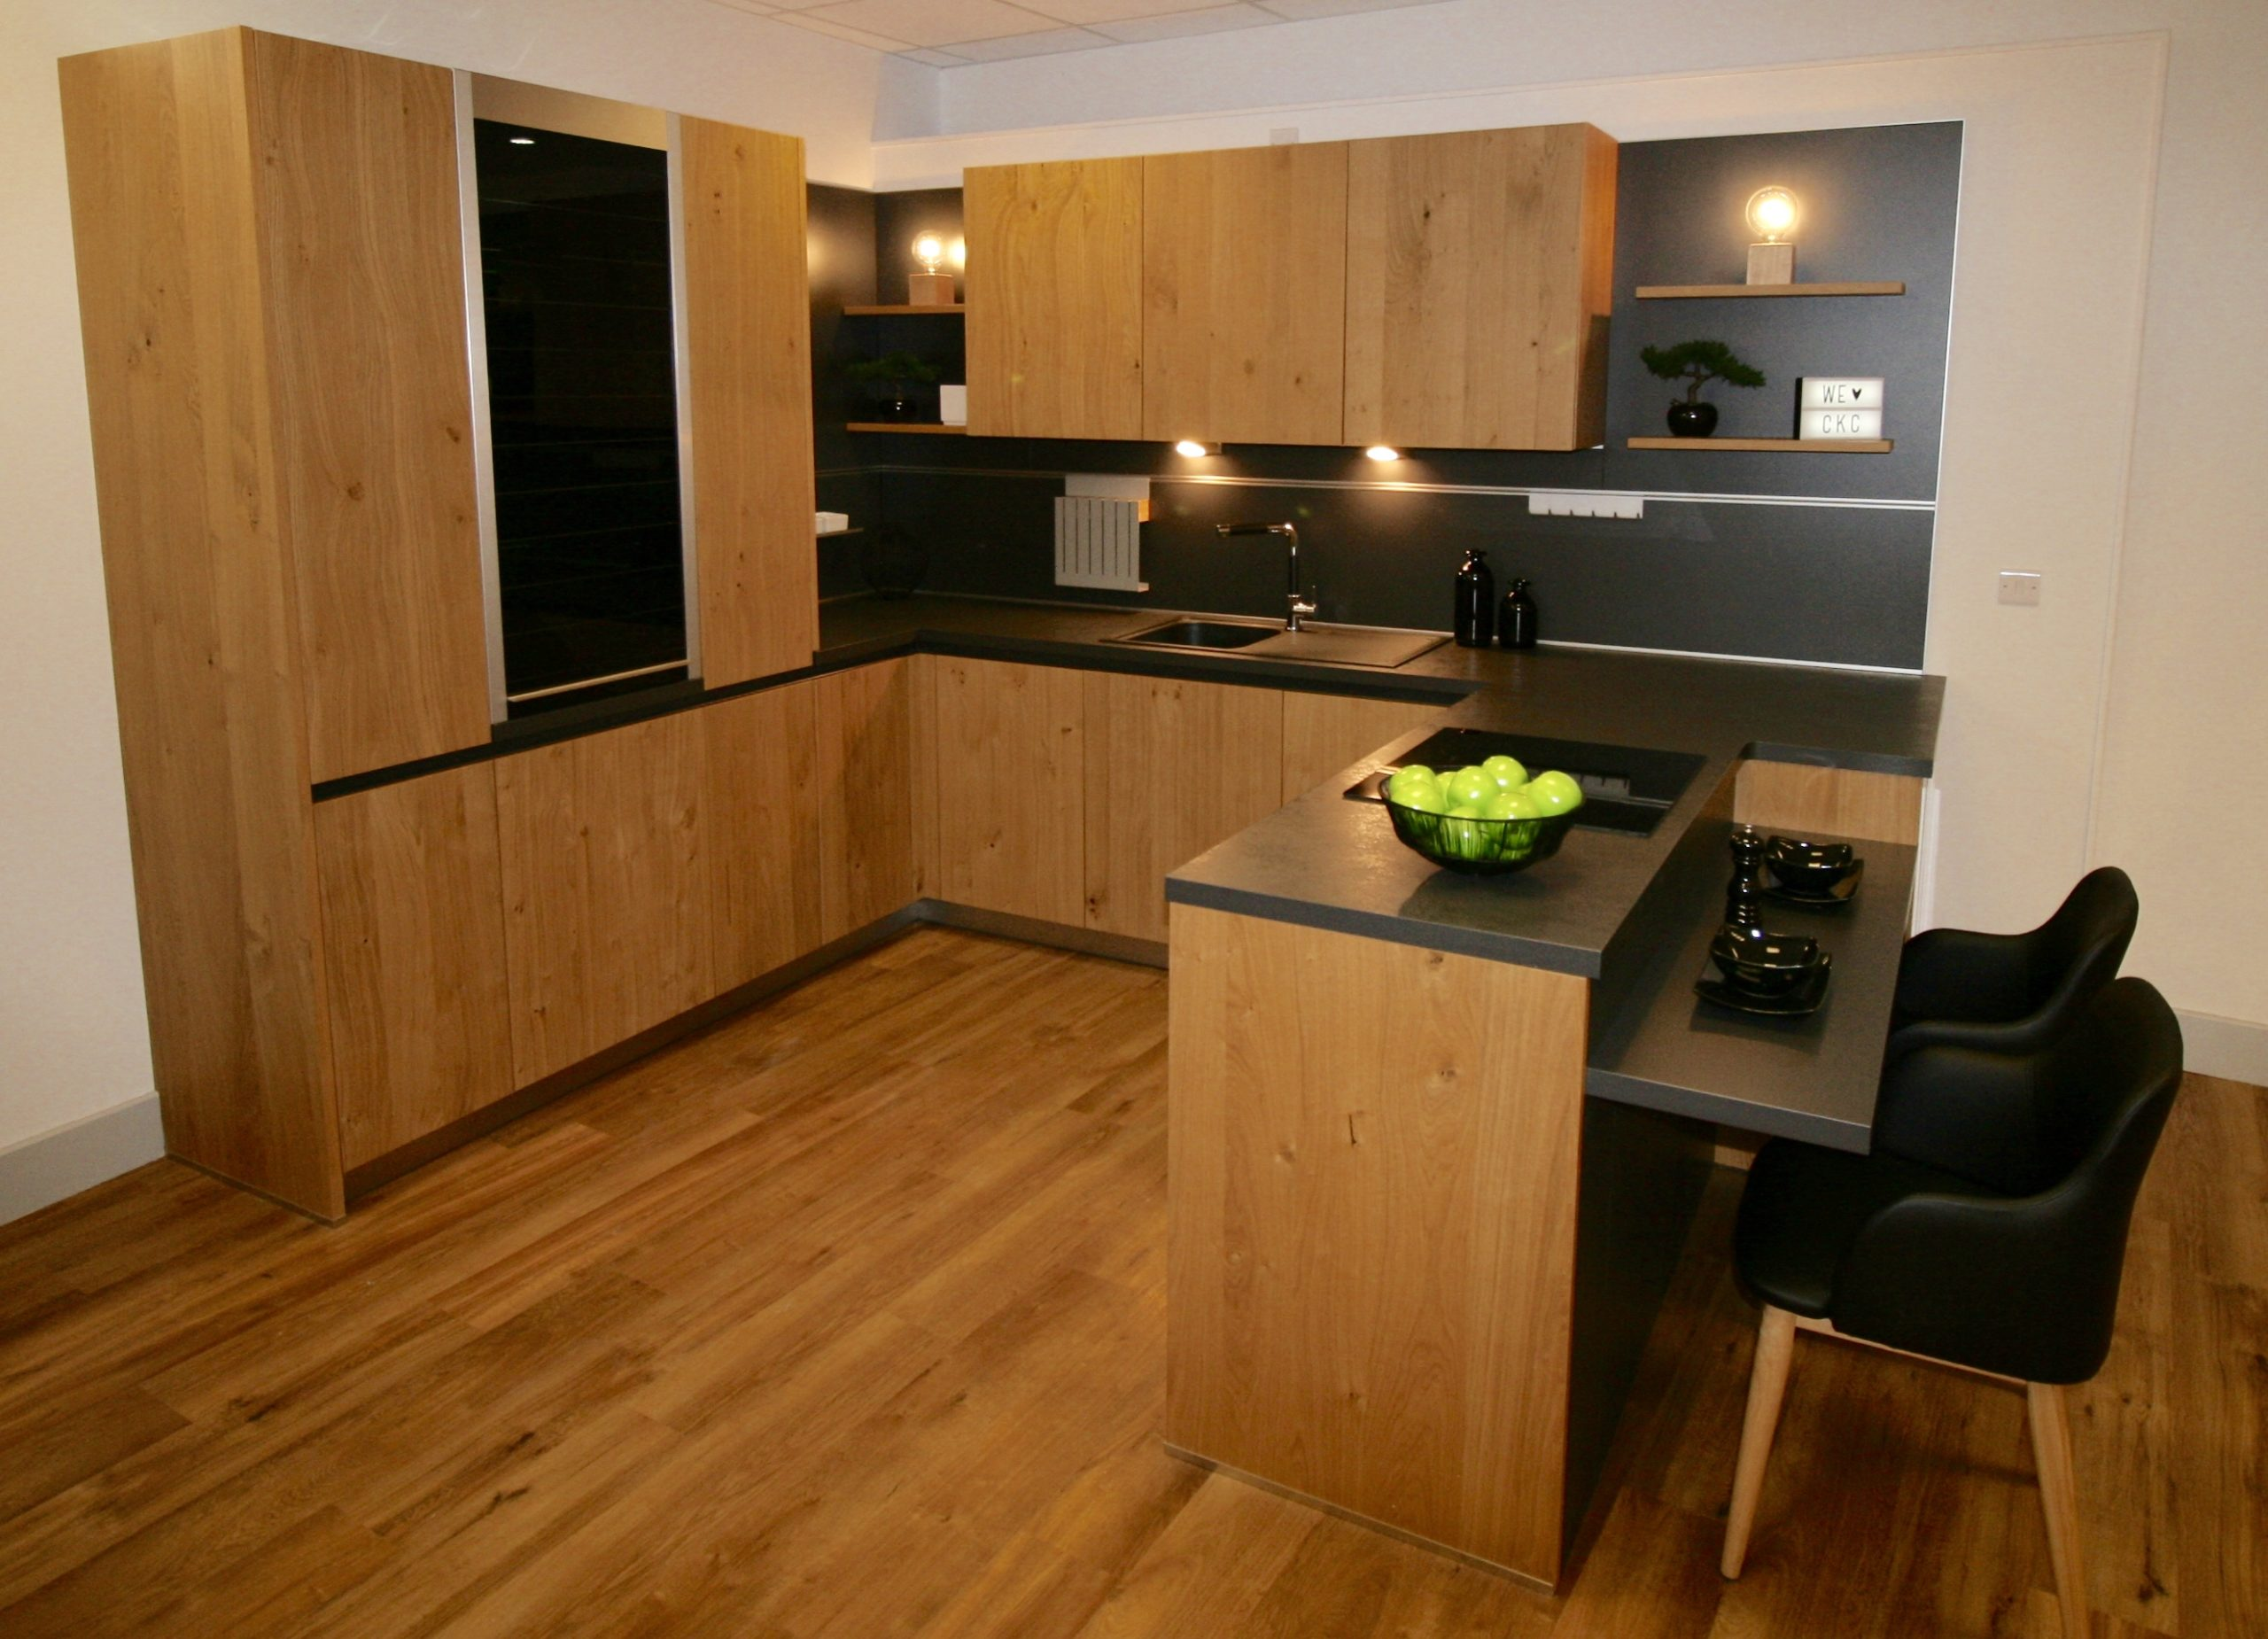 Schuller Bari kitchen with solid wood doors and black laminate worktops and wall panels